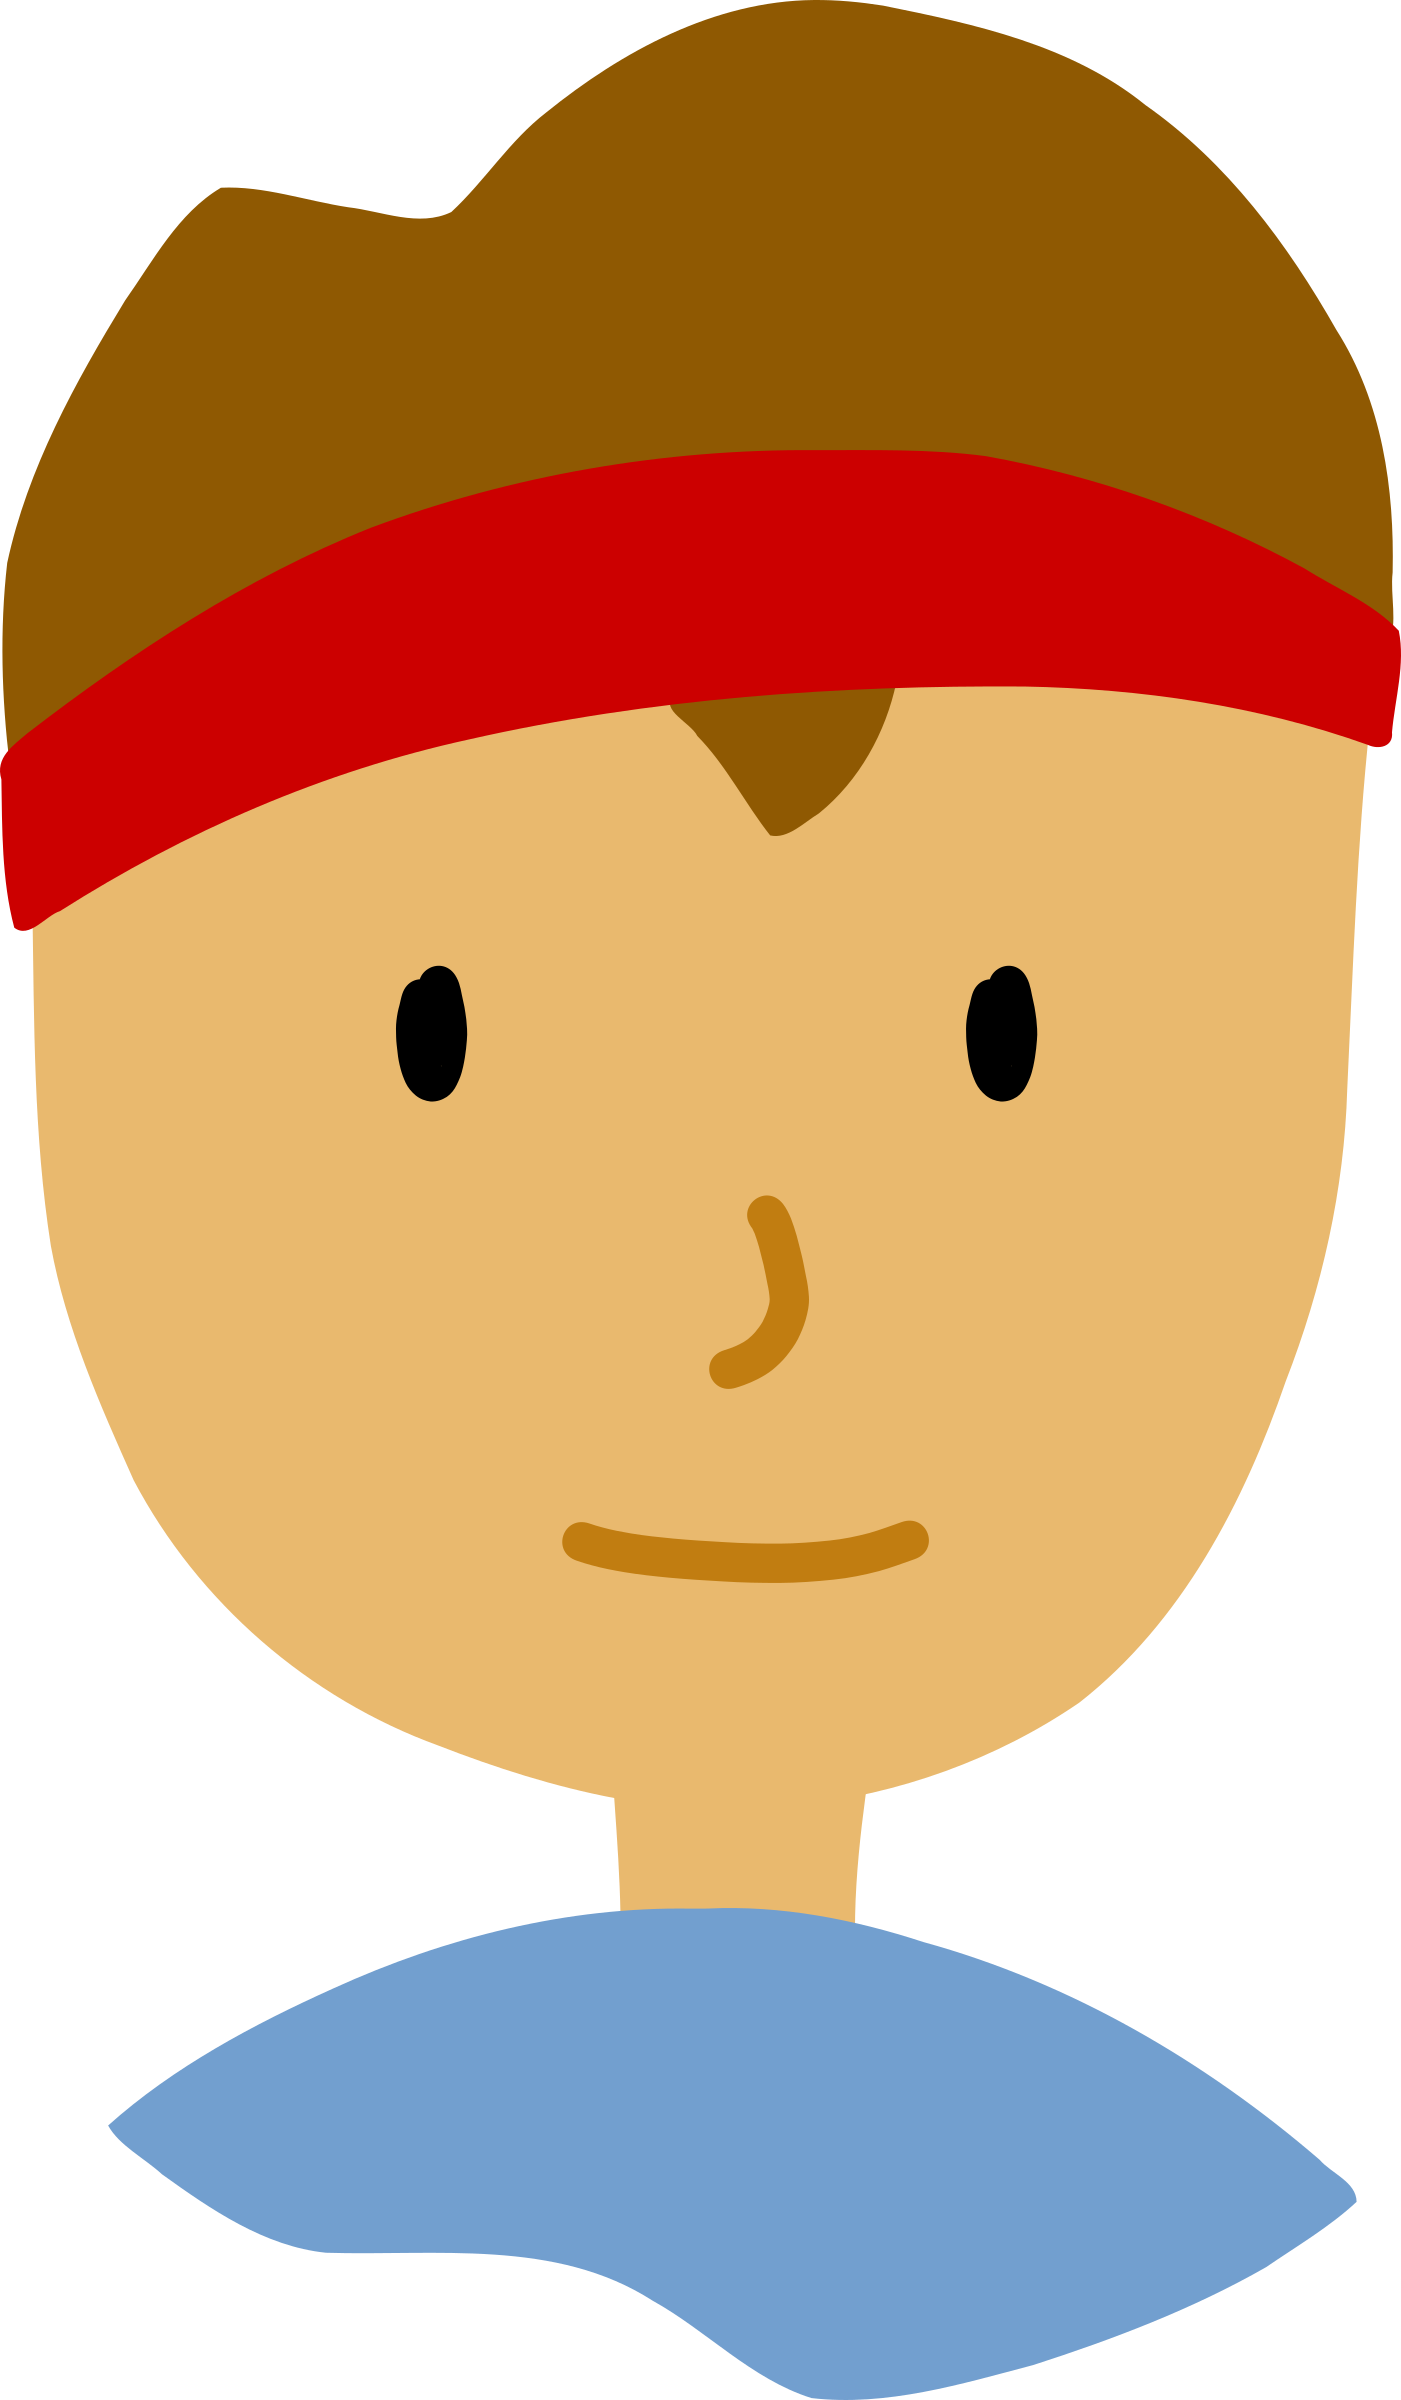 Face big image png. Young clipart brown haired boy